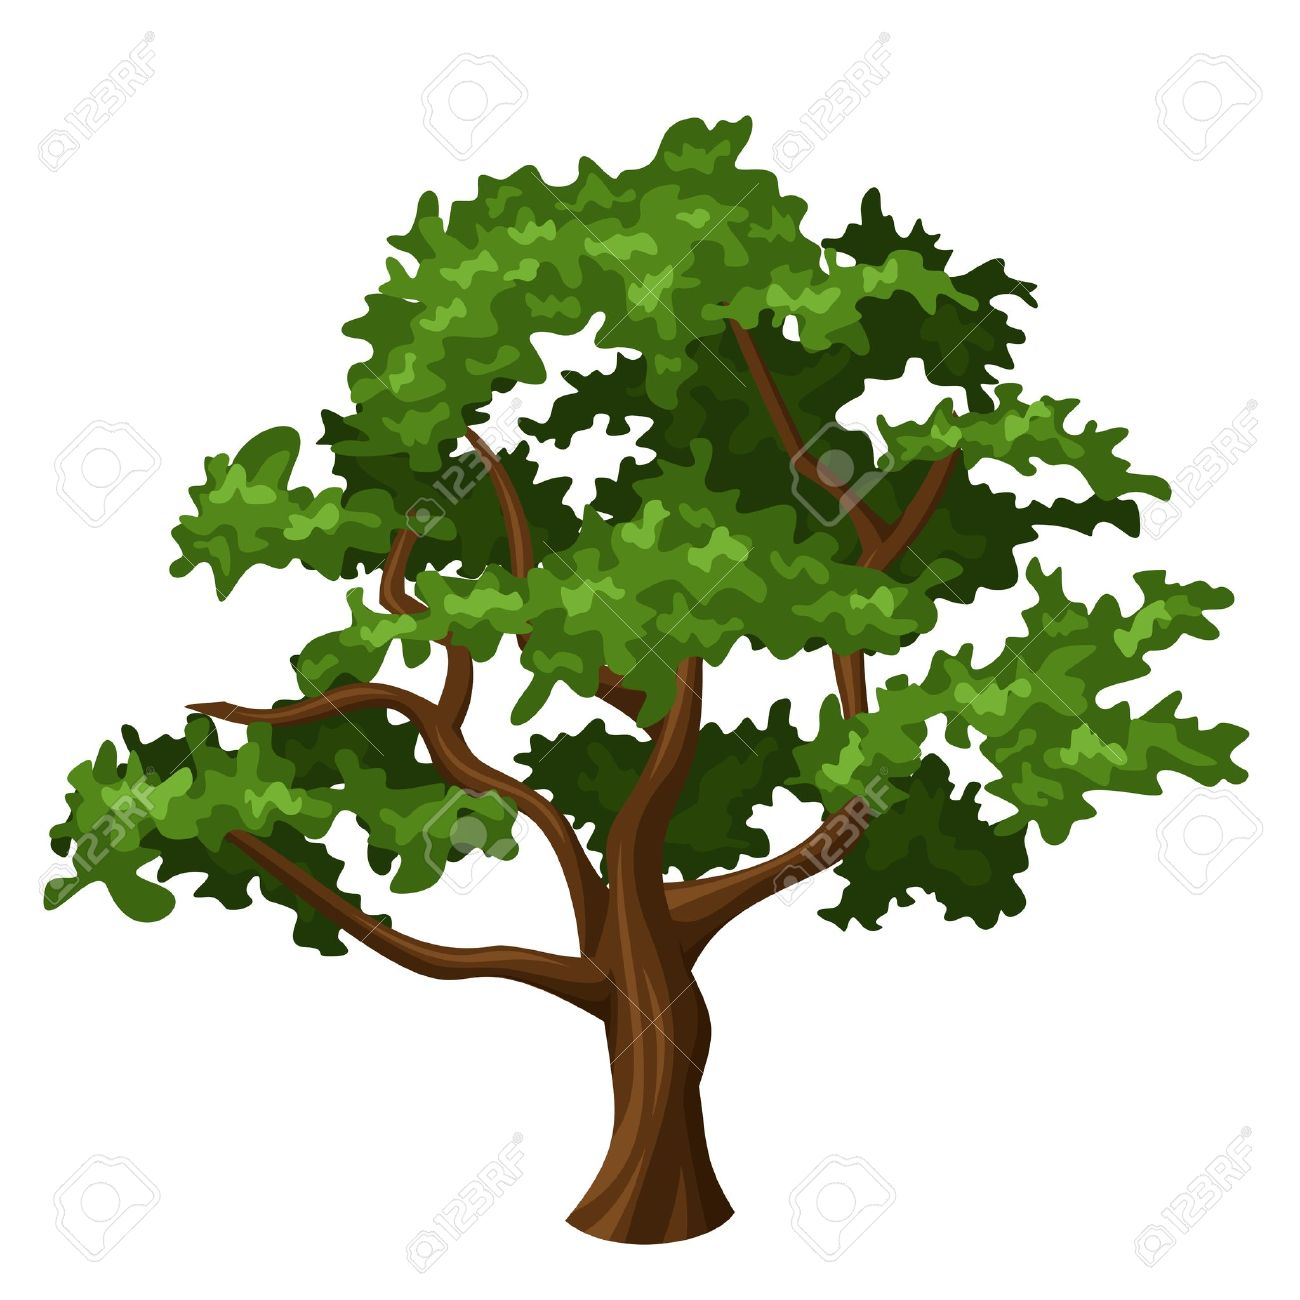 oak tree royalty free cliparts vectors and stock illustration rh 123rf com oak tree vector download vector oak tree silhouette